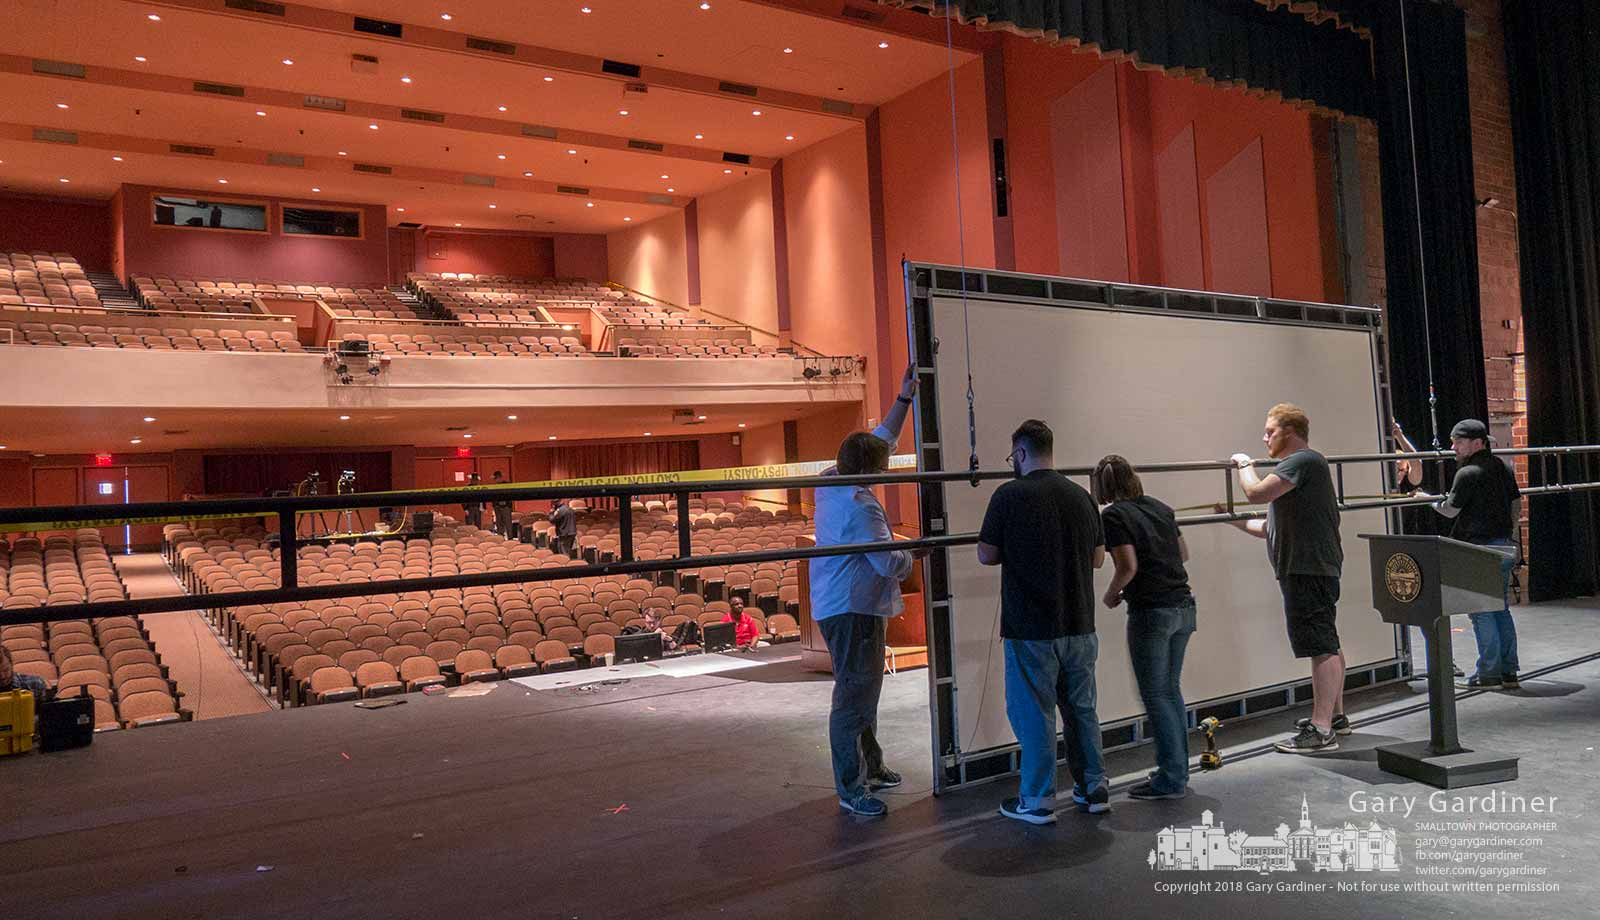 Stagehands attach a screen to rigging on the stage at Fritsche Hall at Otterbein University where Ohio Gov. John Kasich will give his final Stateof the State speech Tuesday. My Final Photo for March 5, 2018.